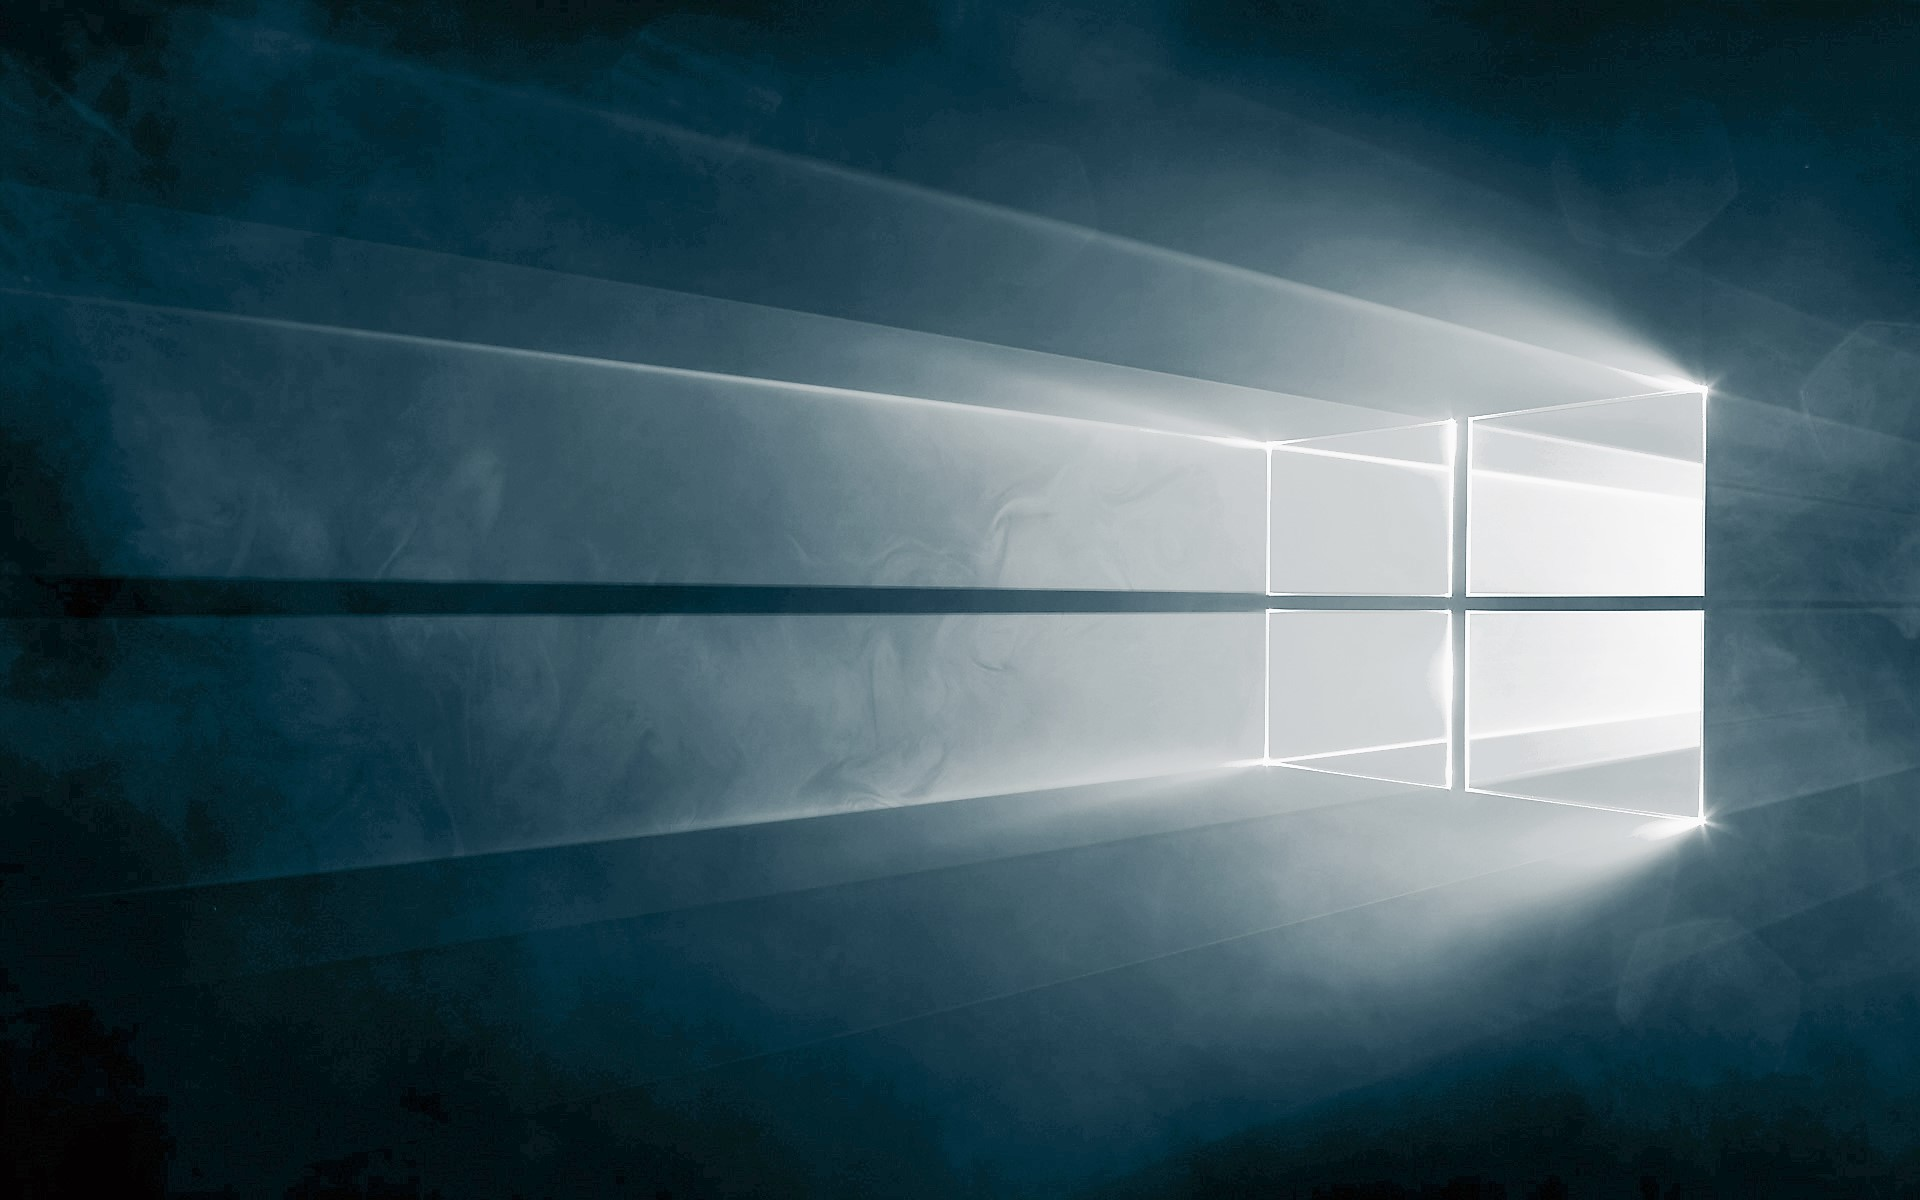 Windows 10 wallpaper hd 1920x1080